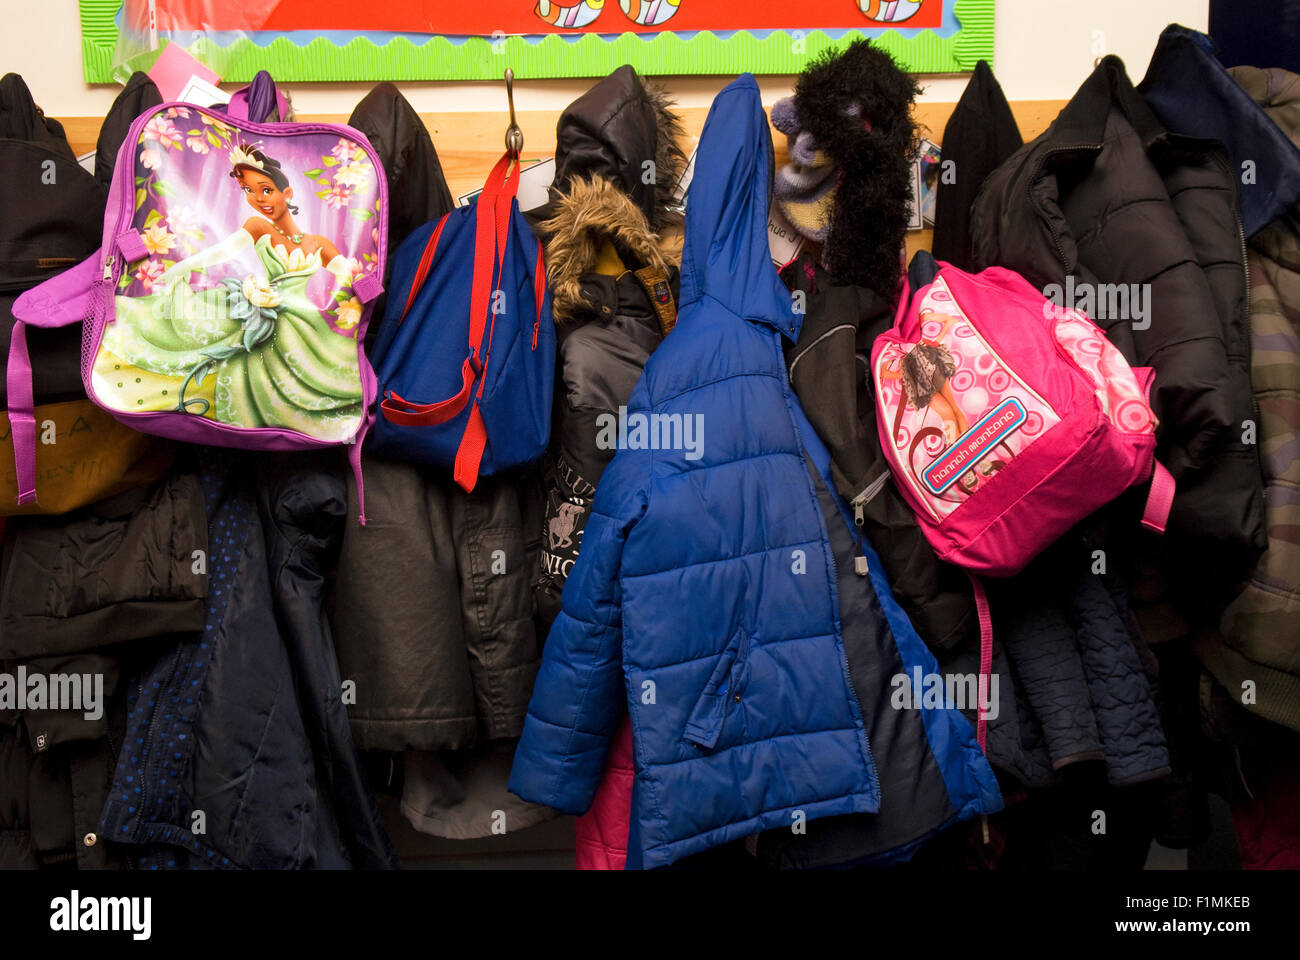 Primary School Pupils 39 Coats Hanging Up On Coat Hooks In